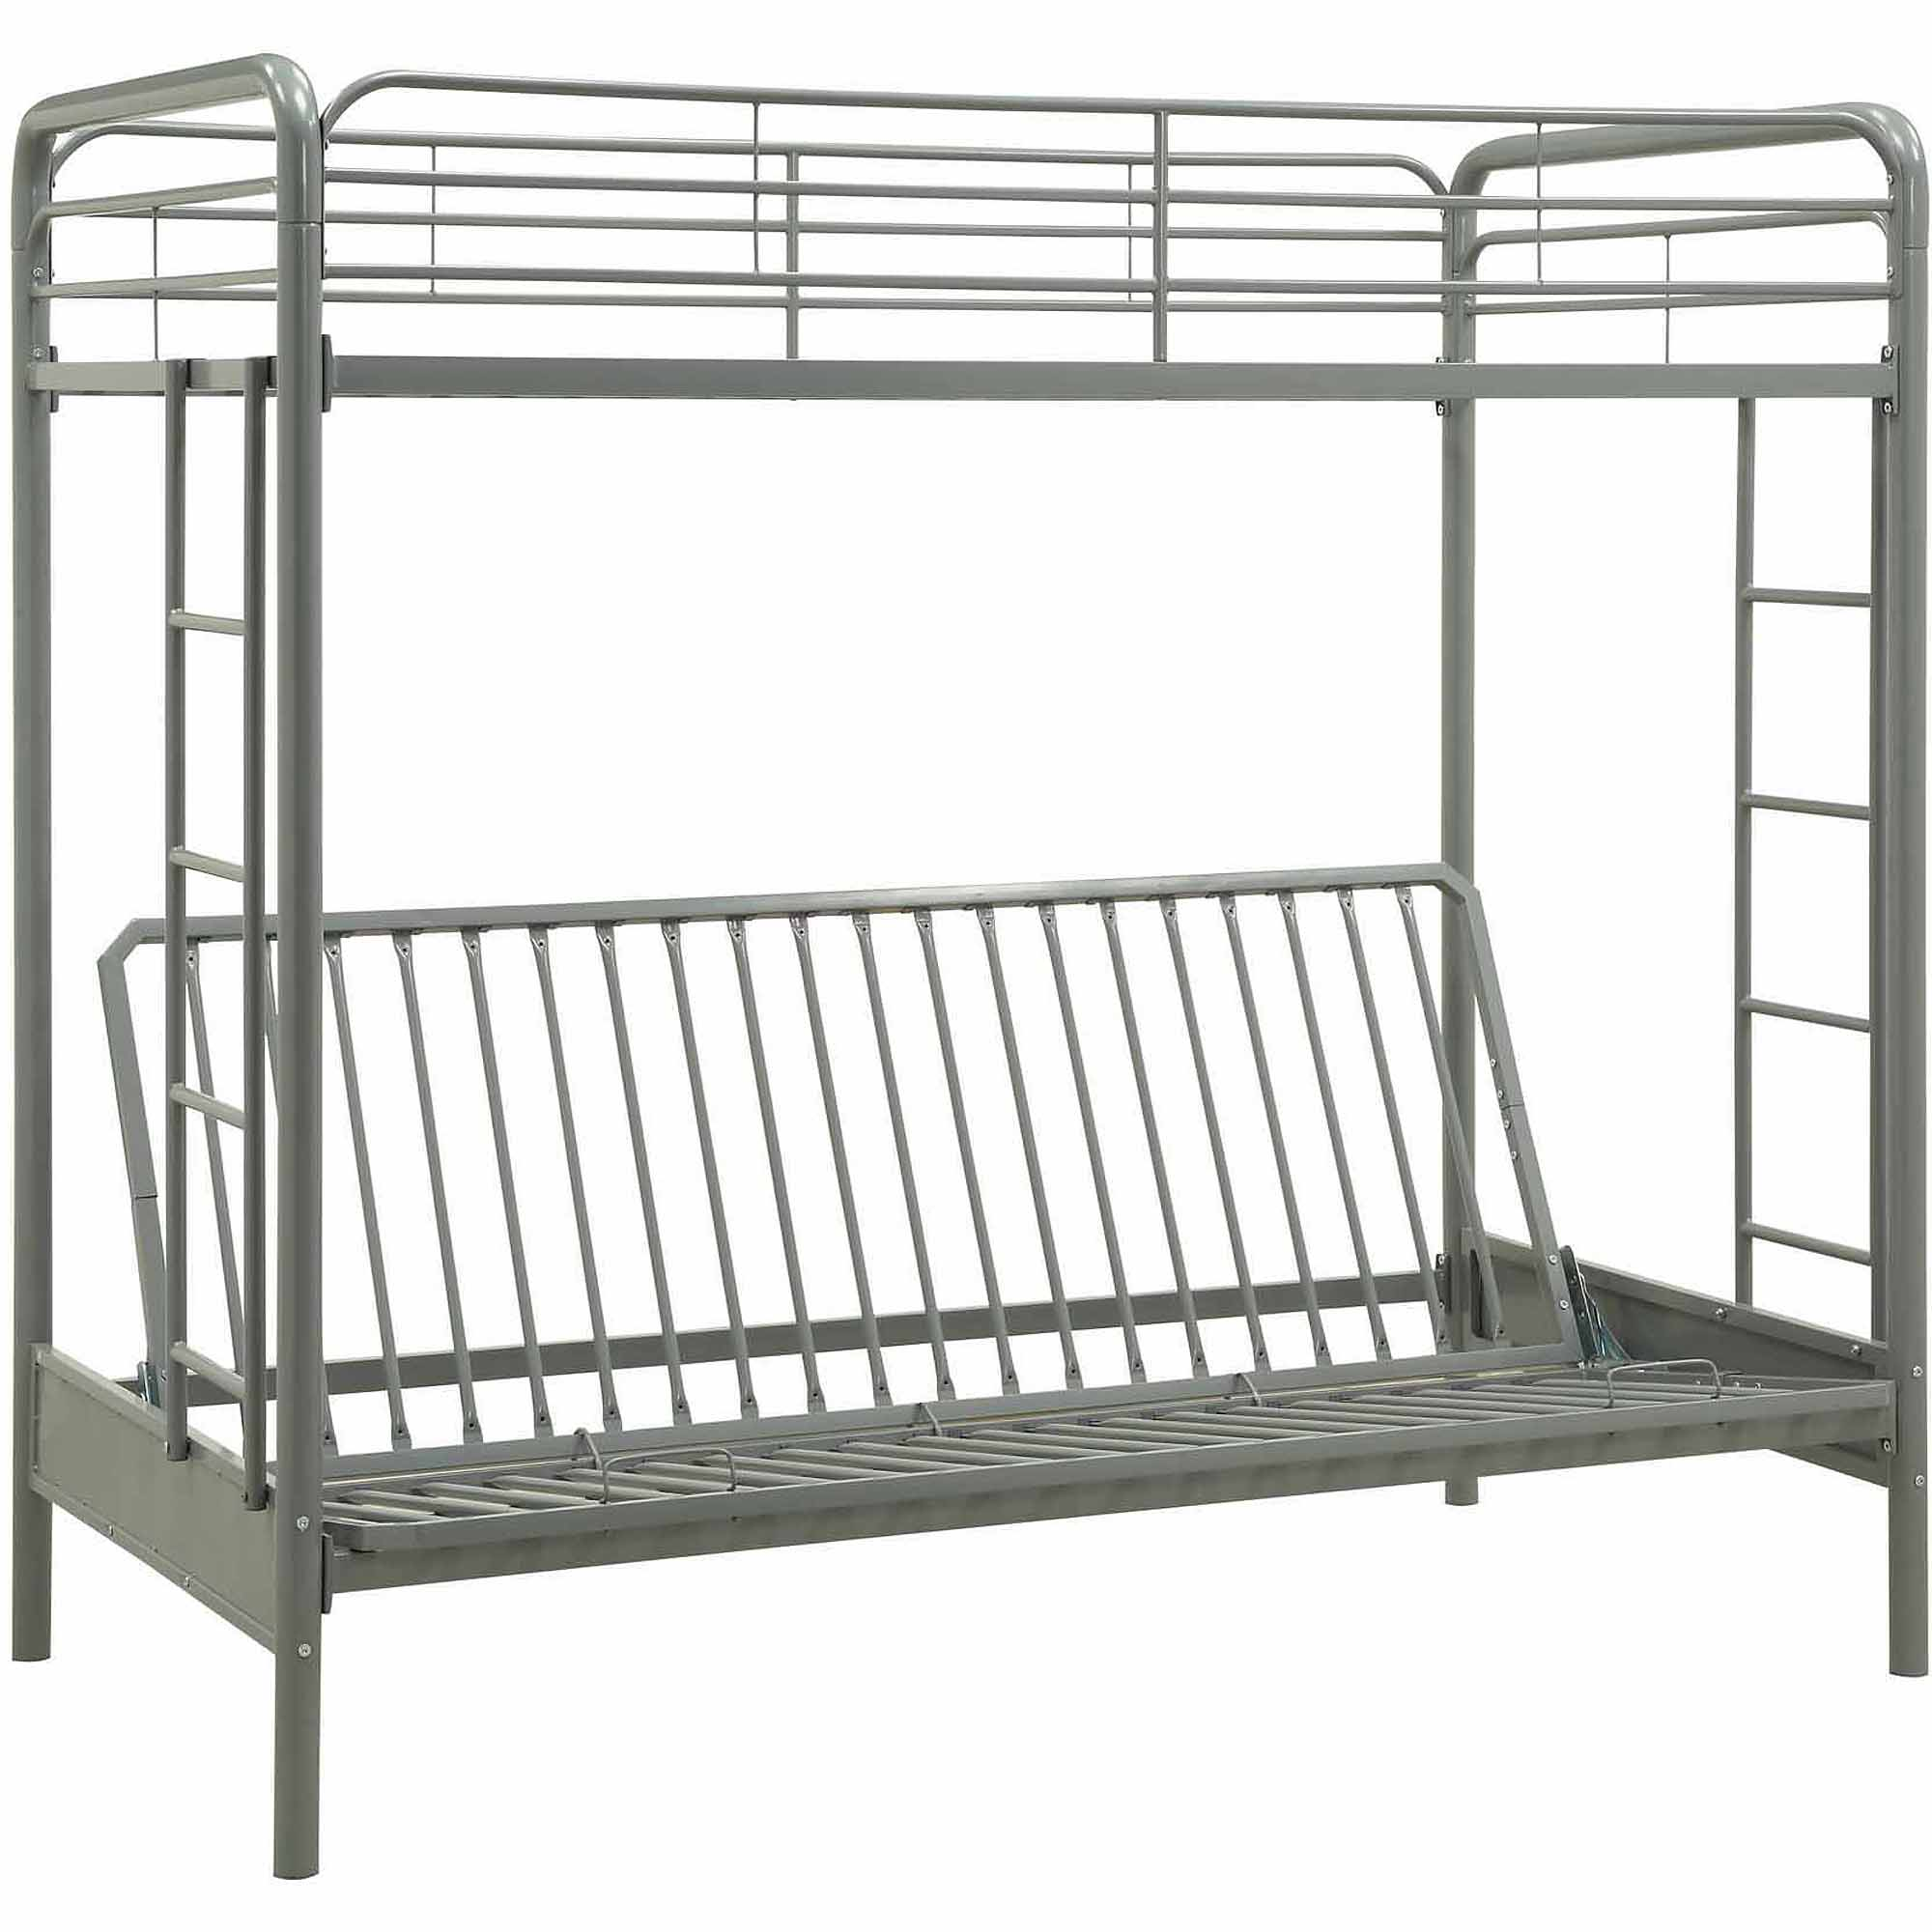 dhp twin over futon metal bunk bed multiple  dhp twin over futon metal bunk bed multiple colors   ebay  rh   ebay